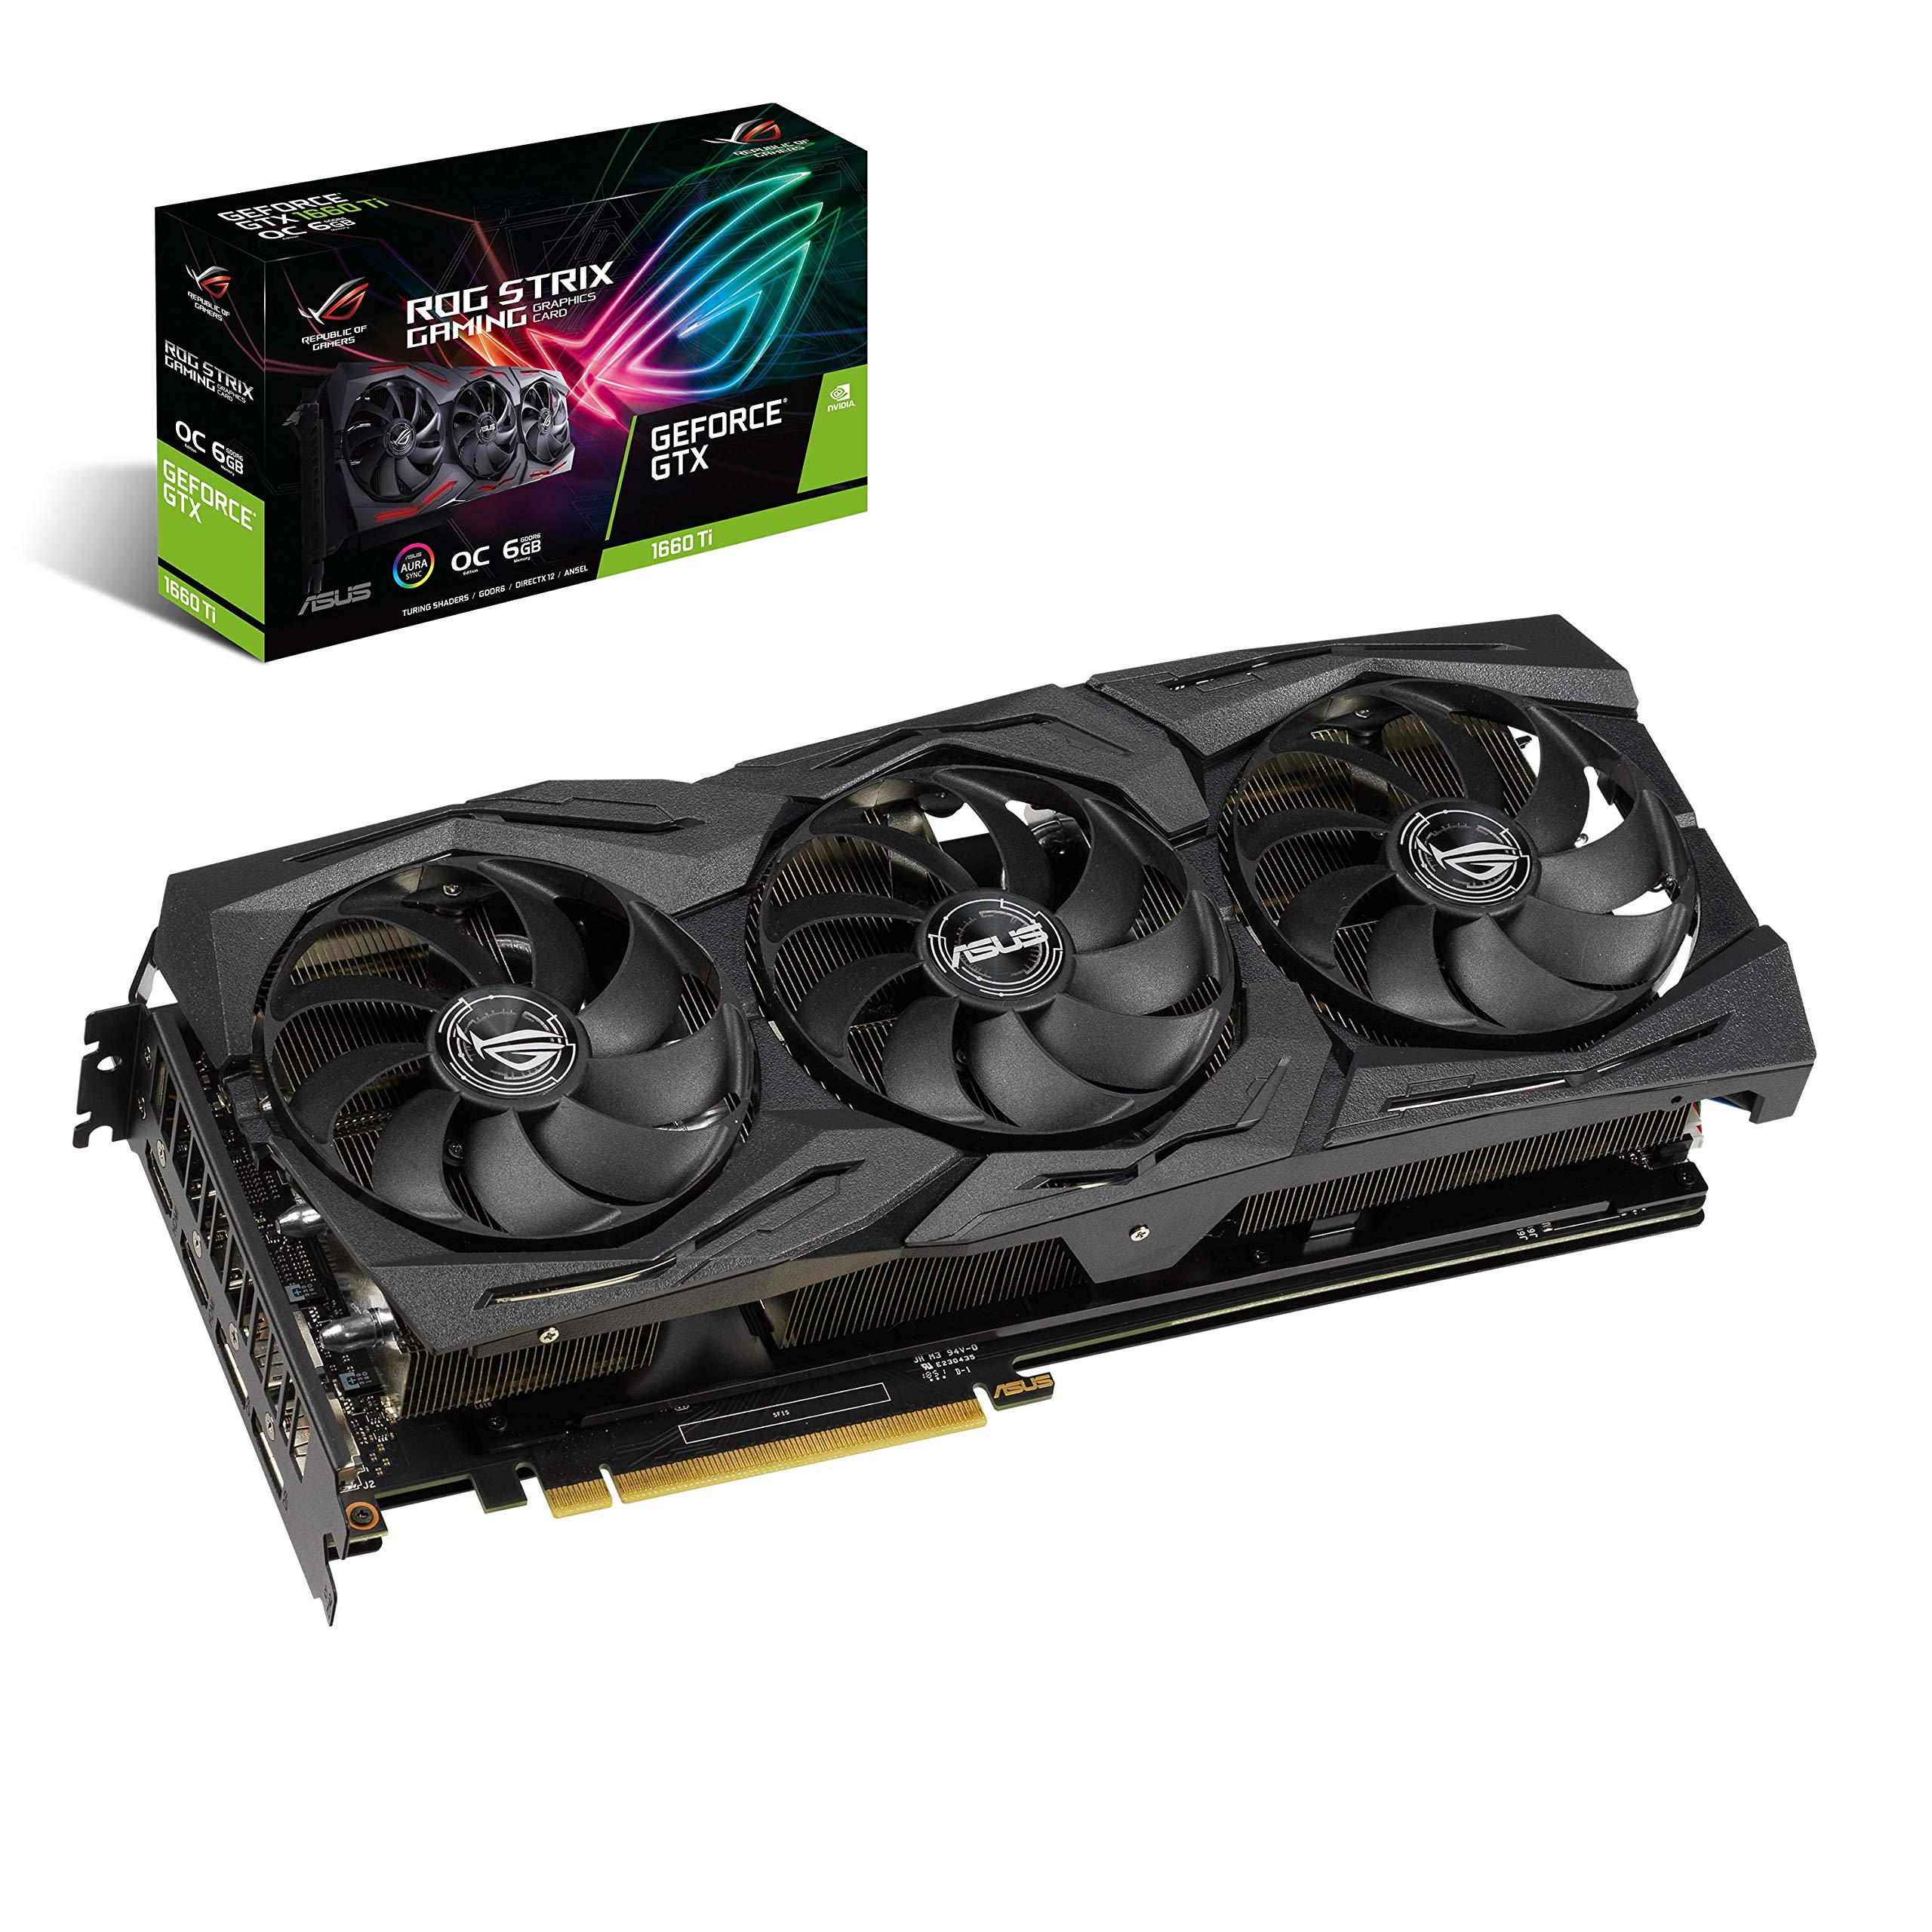 ASUS ROG Strix GeForce GTX 1660 Ti 6GB Overclocked Edition VR Ready HDMI 2.0 DP 1.4 Auto-extreme Graphics card (STRIX-GTX1660TI-O6G-GAMING) by ASUS